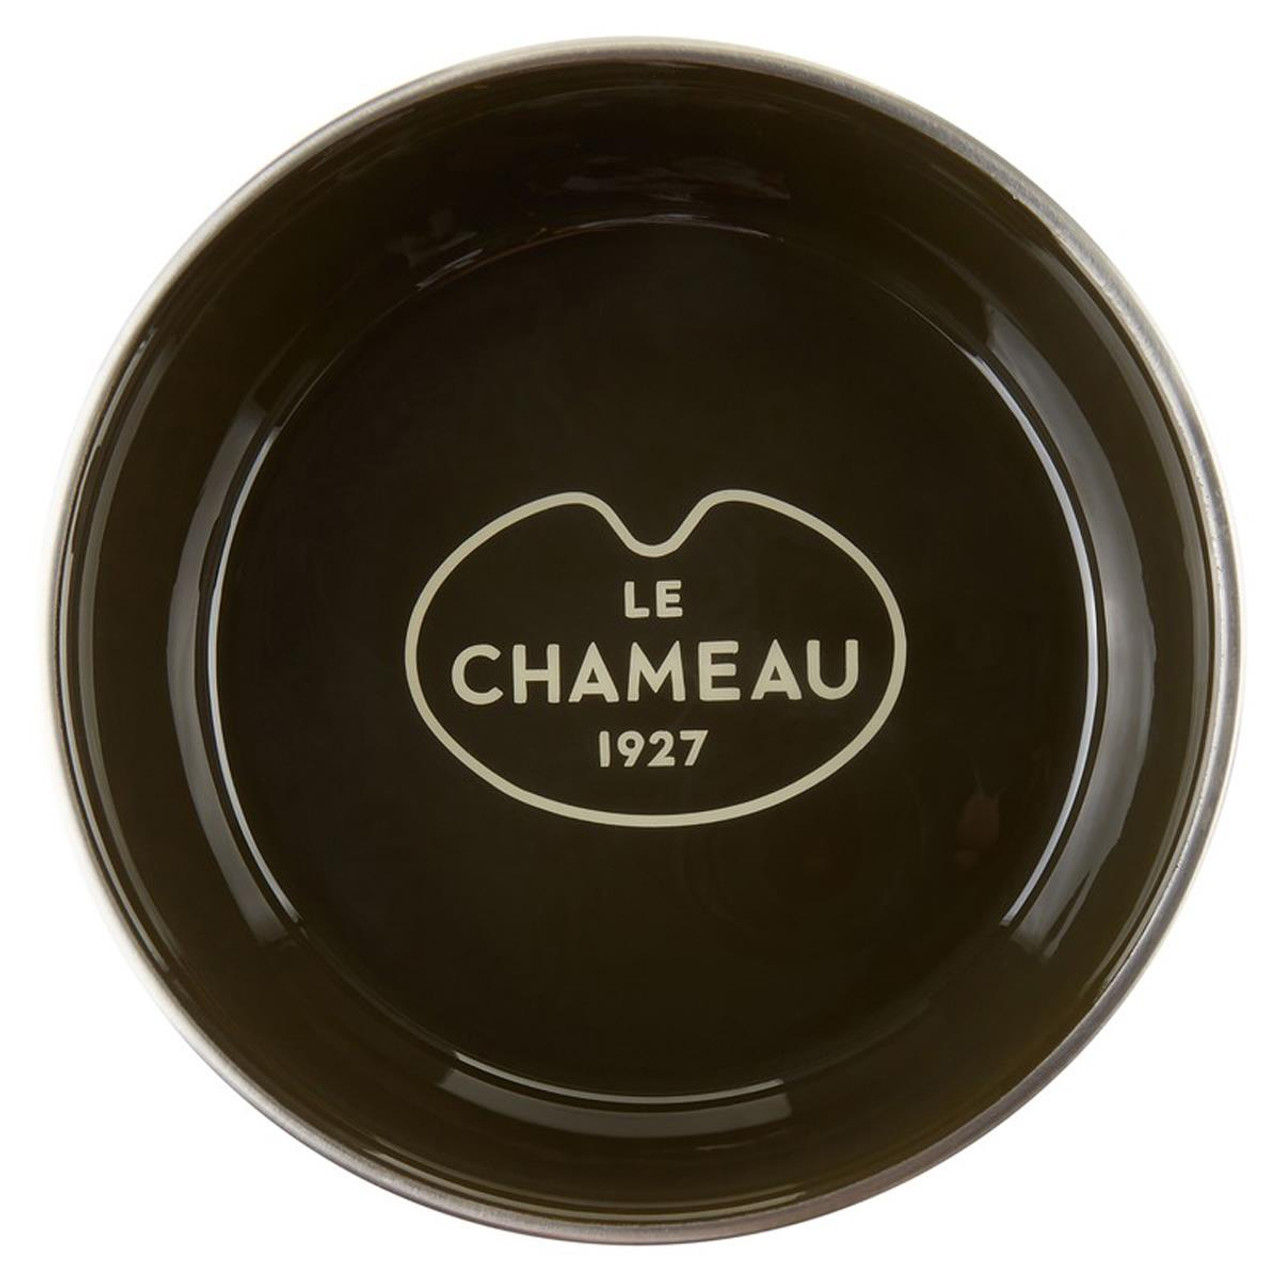 Le Chameau Stainless Steel Dog Bowl